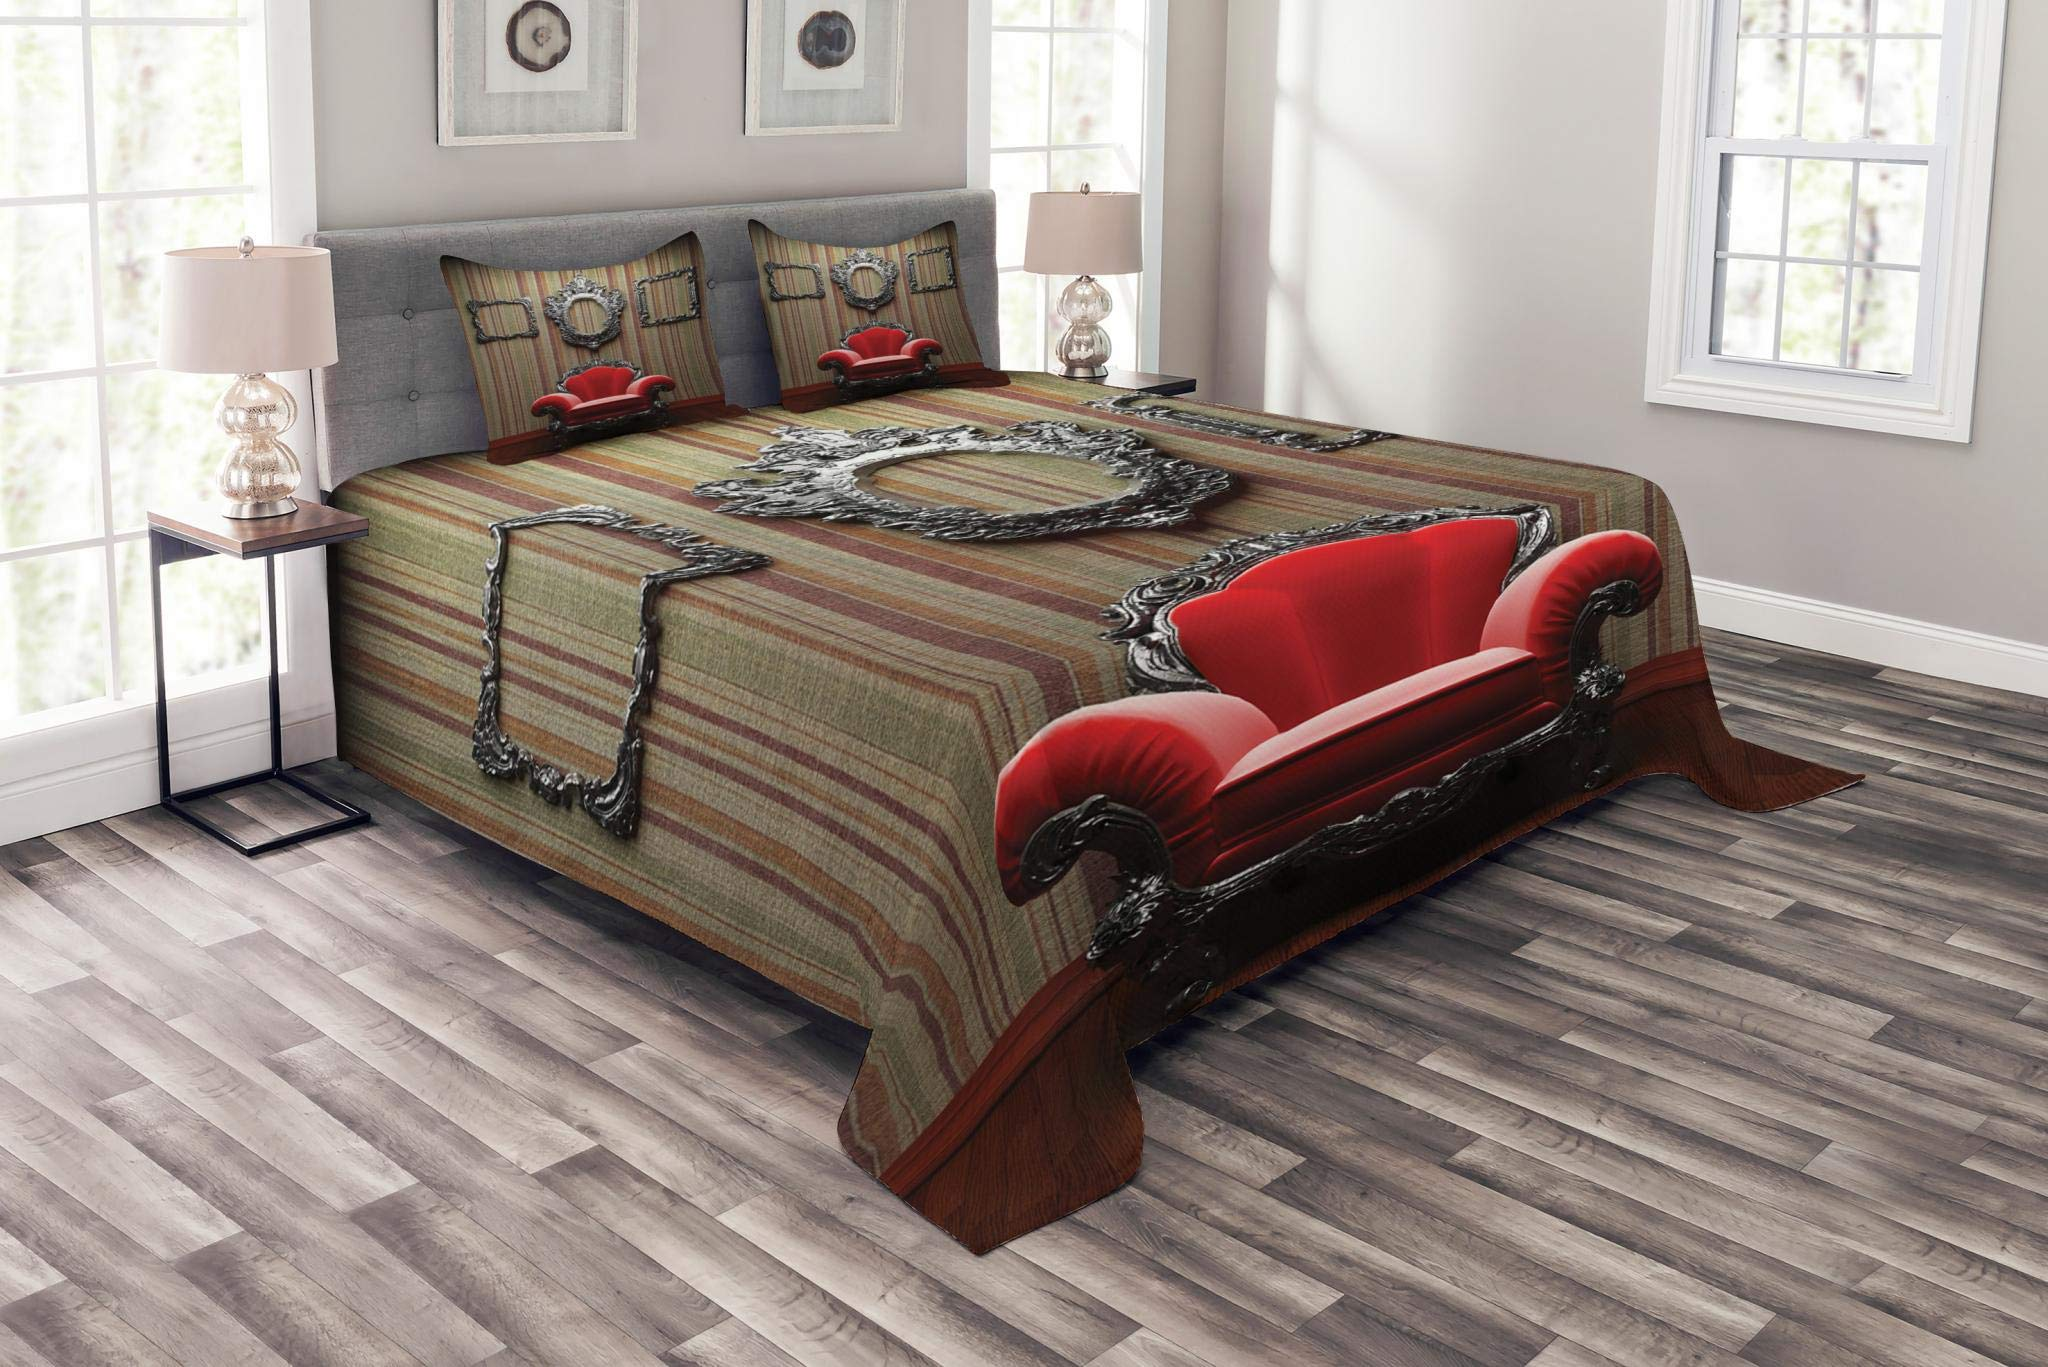 Lunarable Antique Bedspread Set Queen Size, Wall and Chair Vintage Picture Frame Vertical Striped Background Timber Floor Image, Decorative Quilted 3 Piece Coverlet Set with 2 Pillow Shams, Multicolor